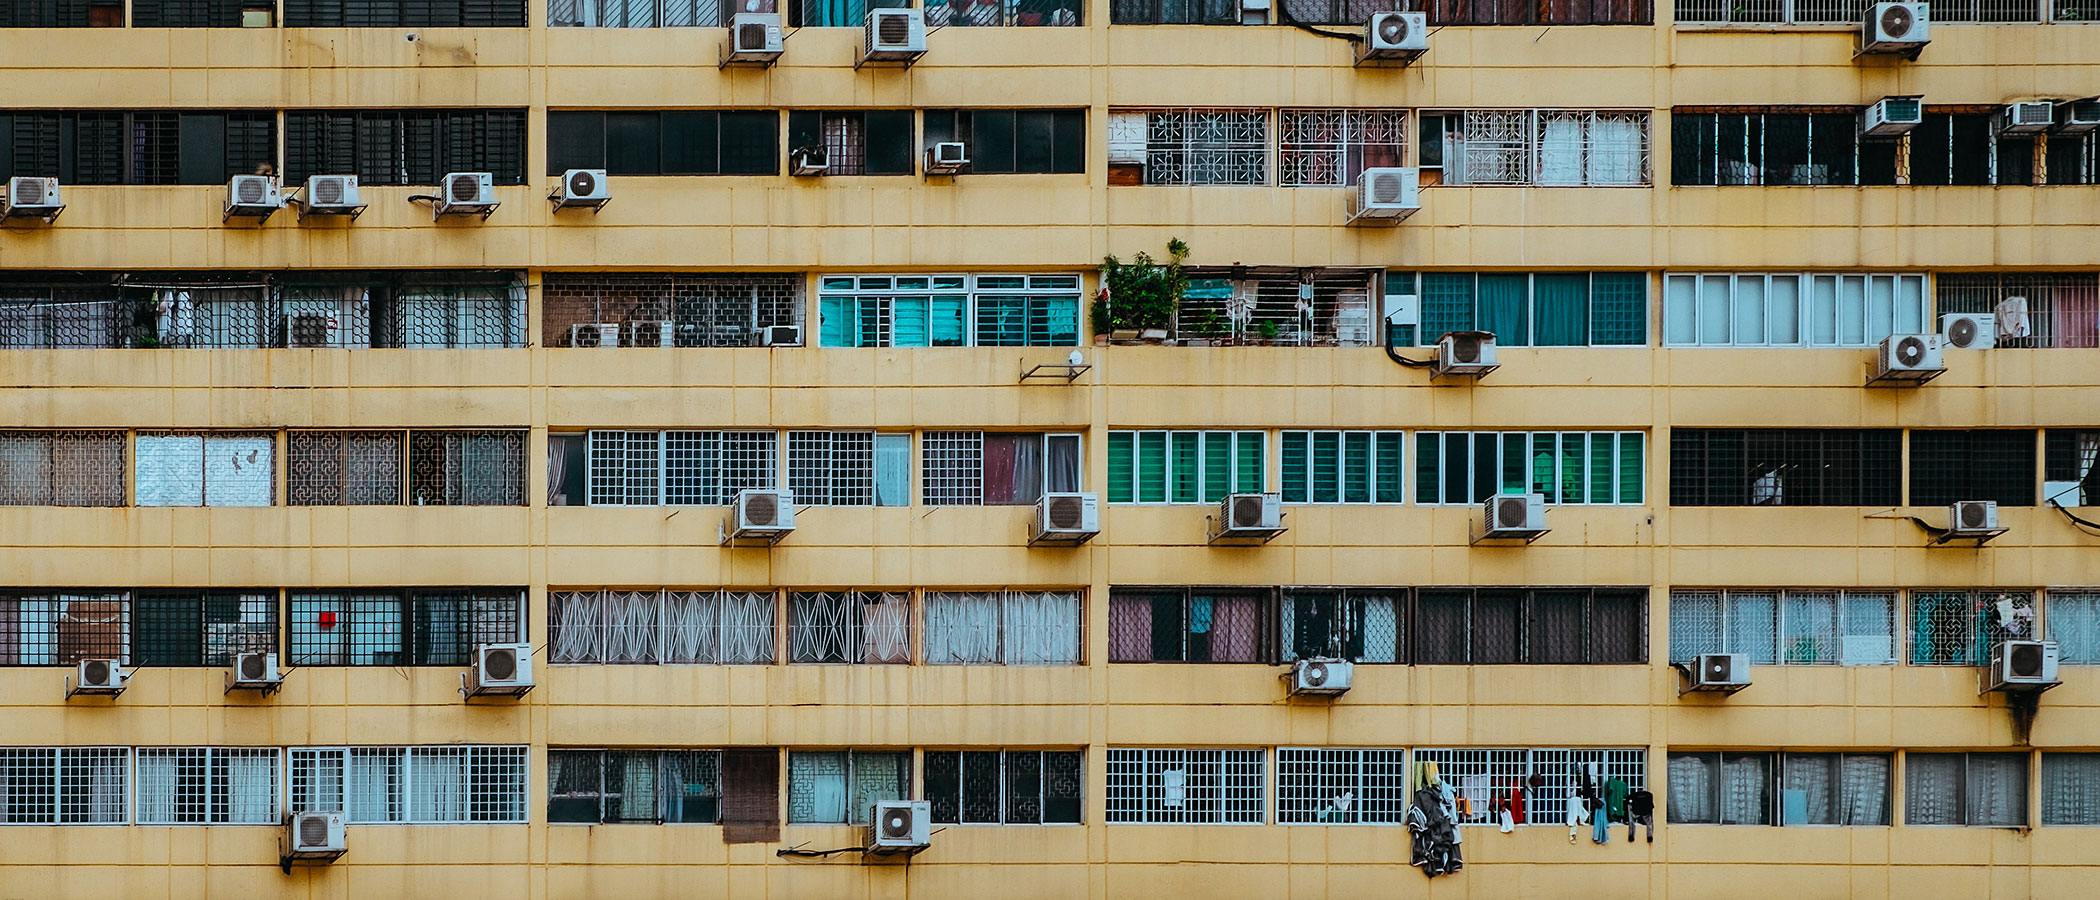 Many air conditioning units on the side of a large apartment building.